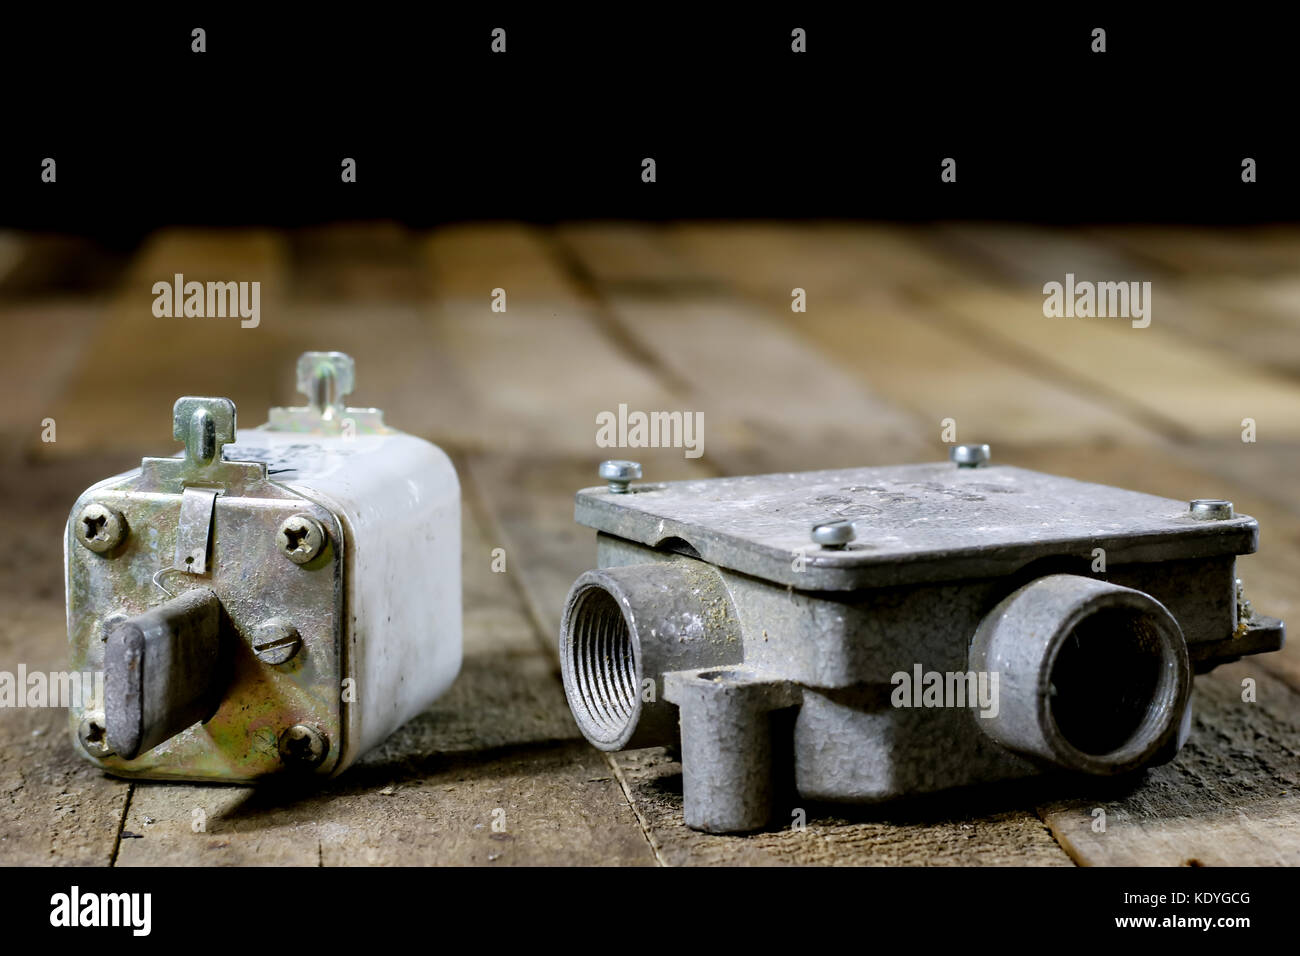 Old Ceramic Fuse Box Schematics Data Wiring Diagrams Fuses Electrical Stock Photos Images Alamy Parts Diagram